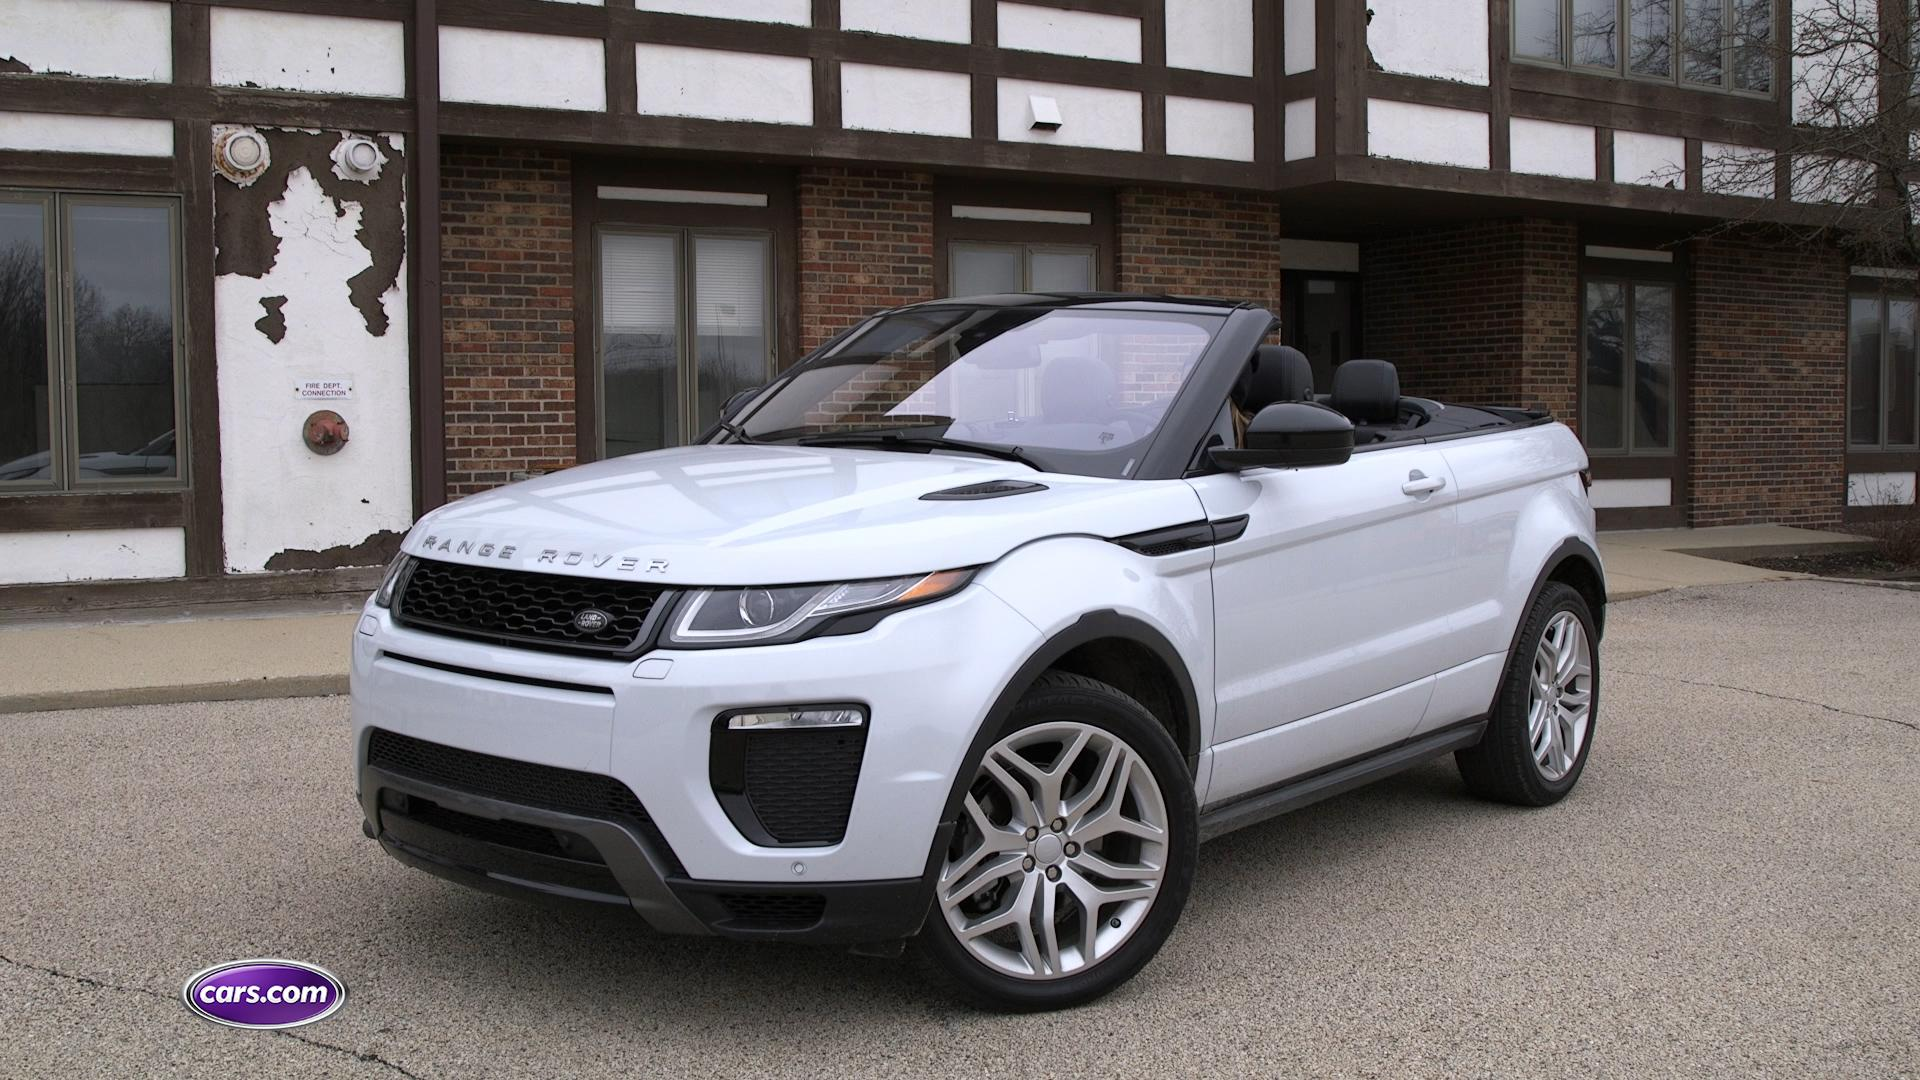 2017 Land Rover Range Rover Evoque Convertible Video Review News